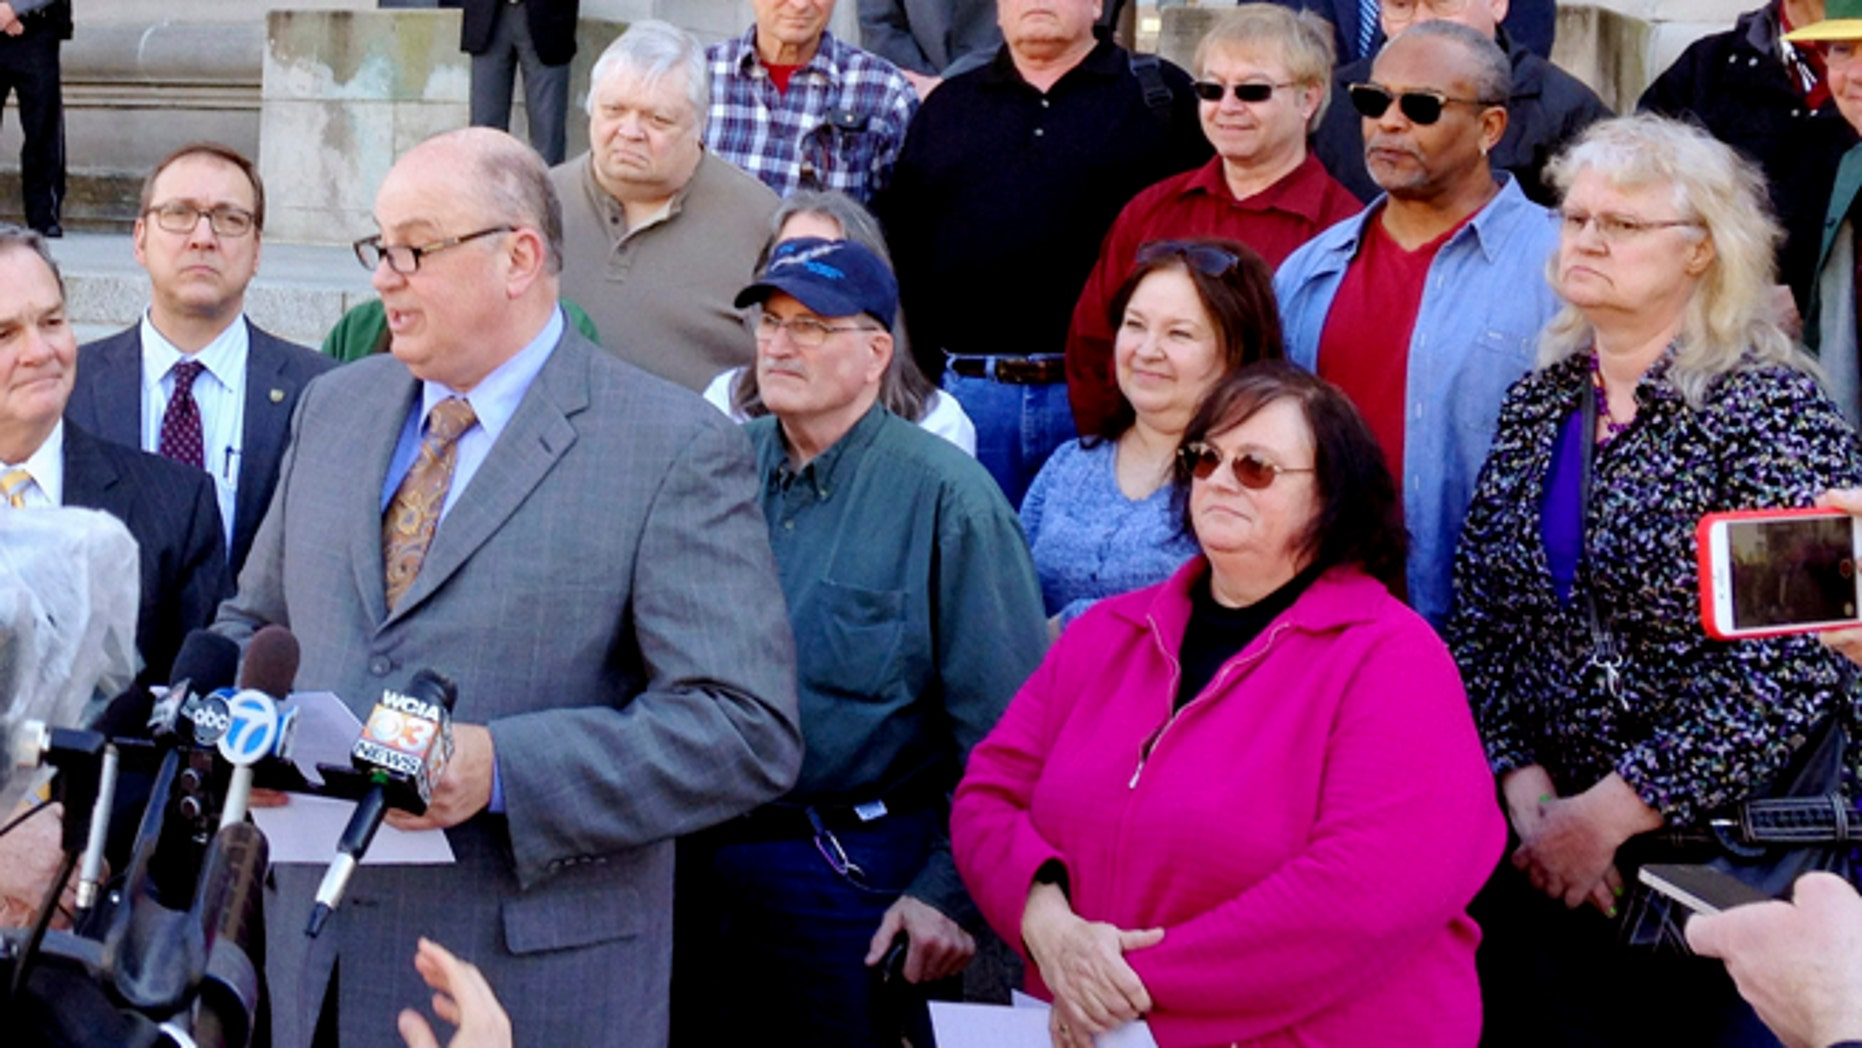 March 11, 2015: Illinois AFL-CIO President Michael Carrigan is joined by state workers and retirees outside the Illinois Supreme Court in Springfield, Ill., as he addresses the media following oral arguments in a lawsuit over a state pension overhaul.